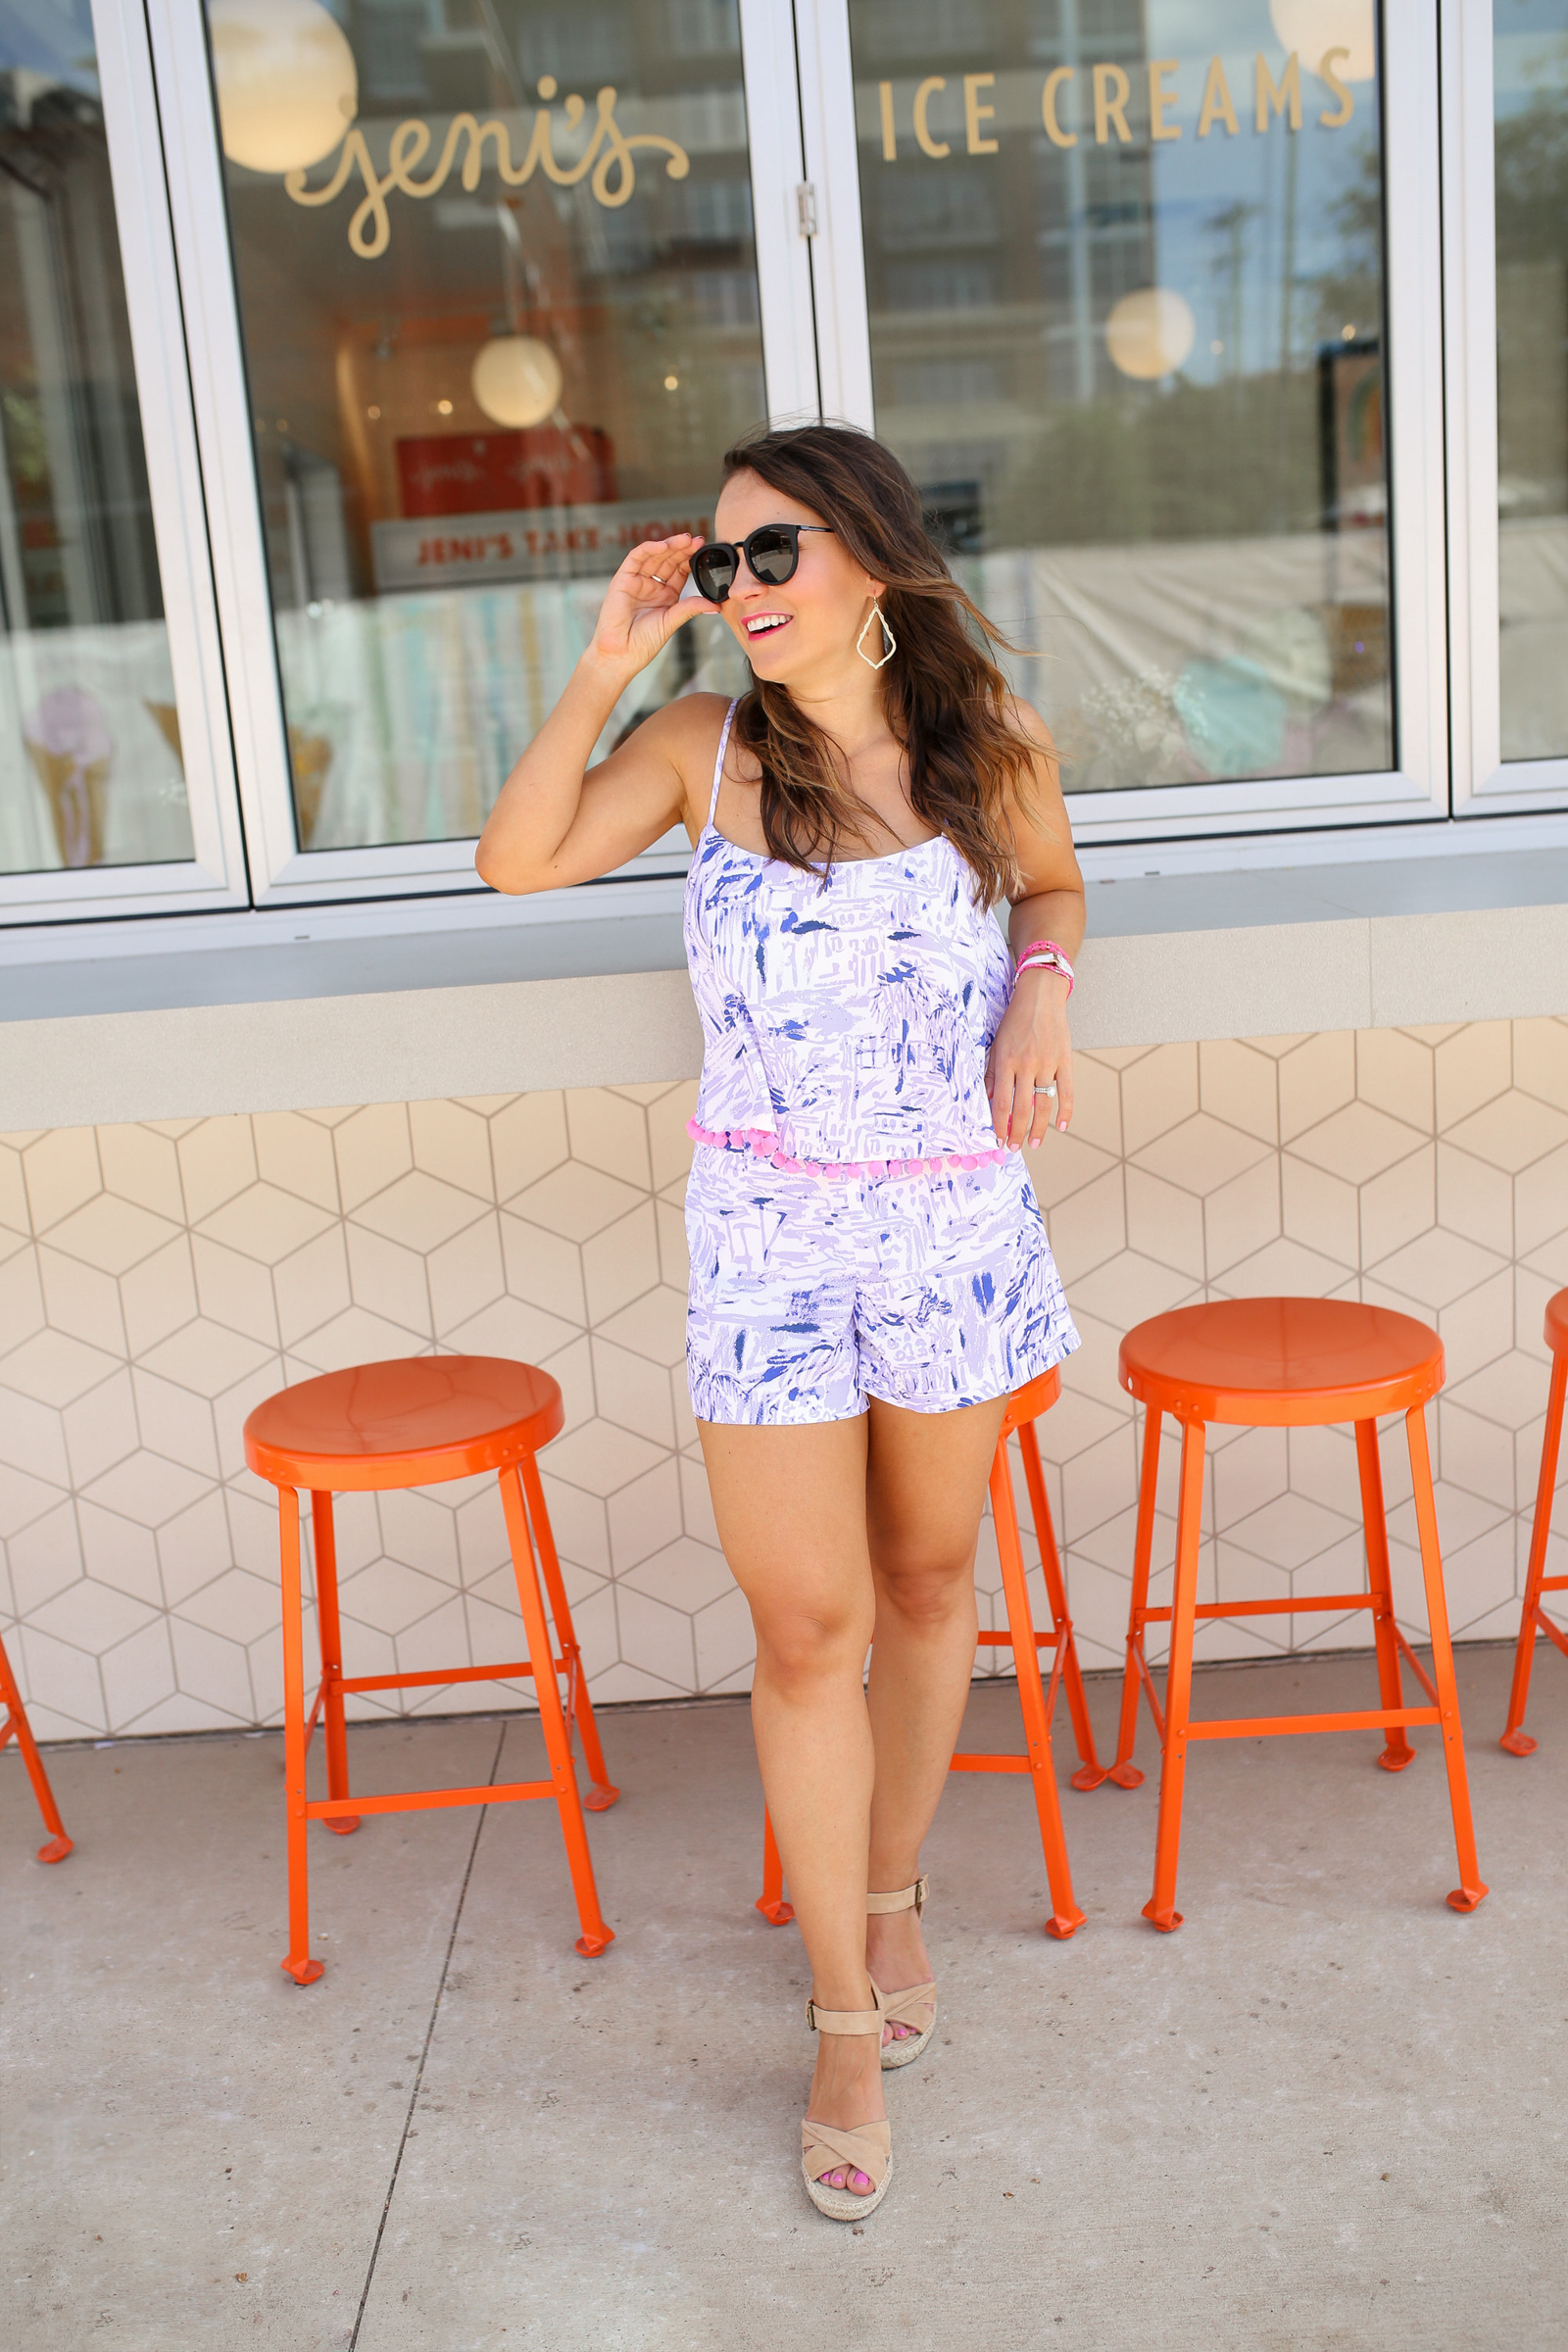 lilly pulitzer franni set, jeni's ice cream charlotte